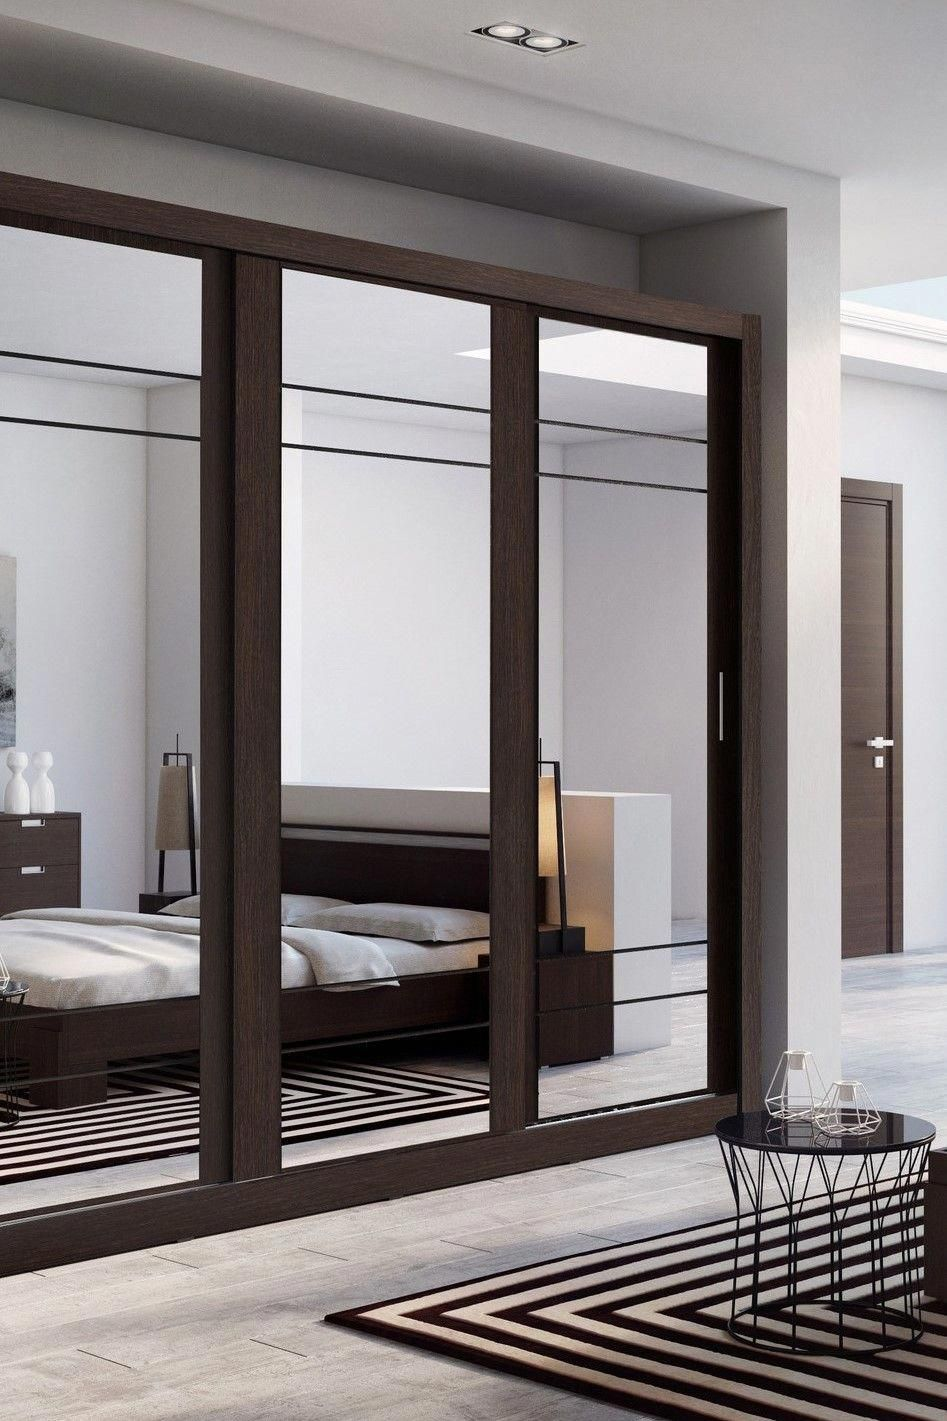 Toups 3 Door Sliding Wardrobe The Toups Sliding Wardrobe Is The Ideal Addition For Any Bedroo Sliding Wardrobe Mirrored Wardrobe Doors Sliding Wardrobe Doors